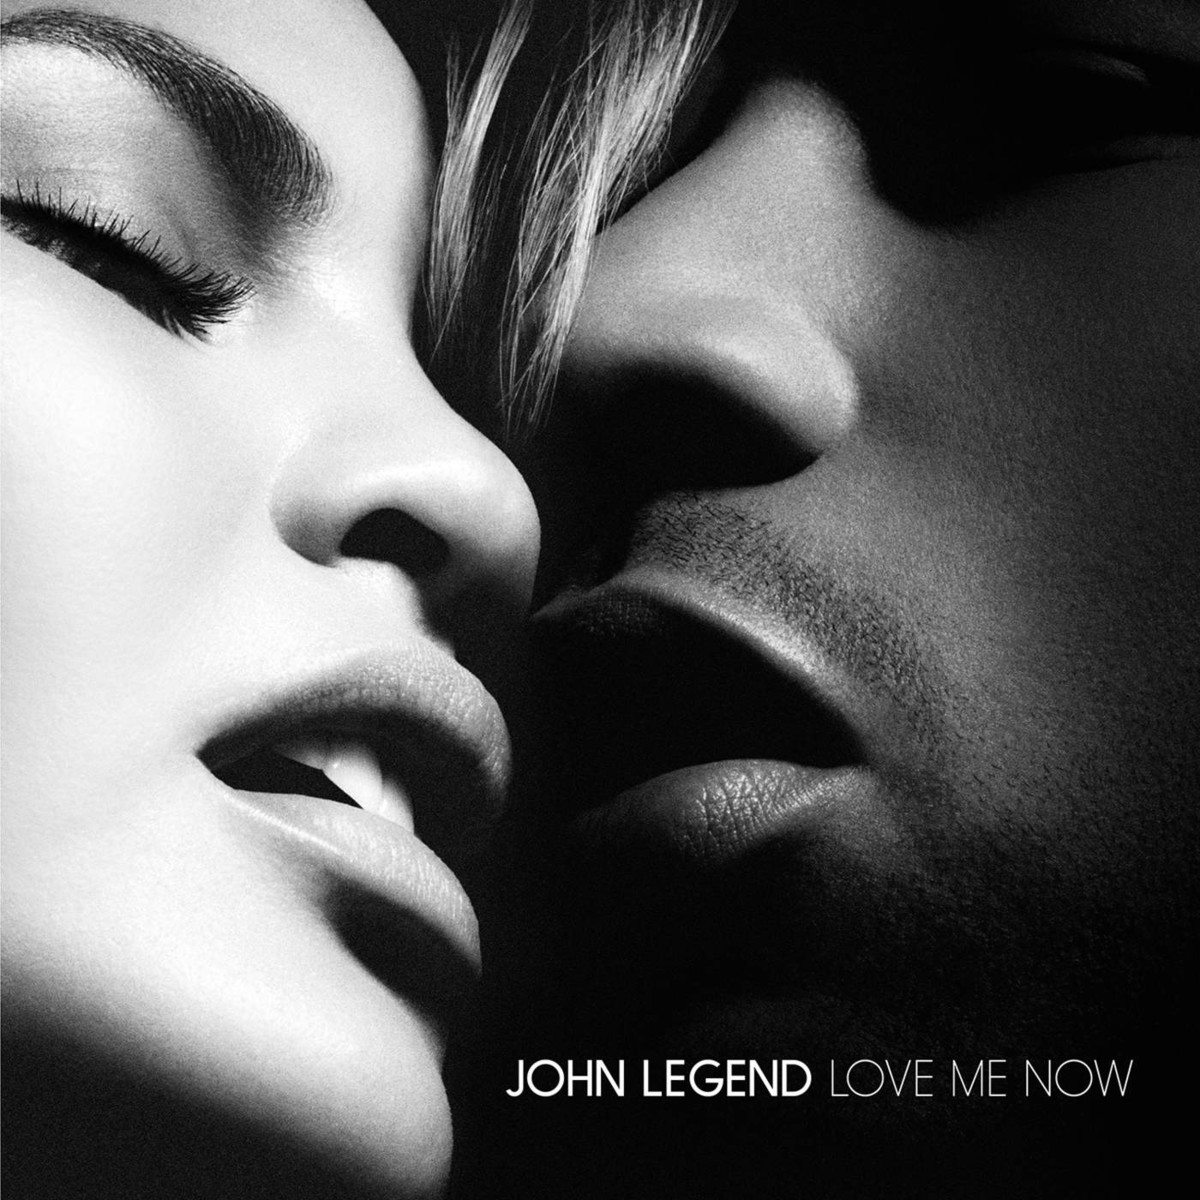 john-legend-love-me-now-art